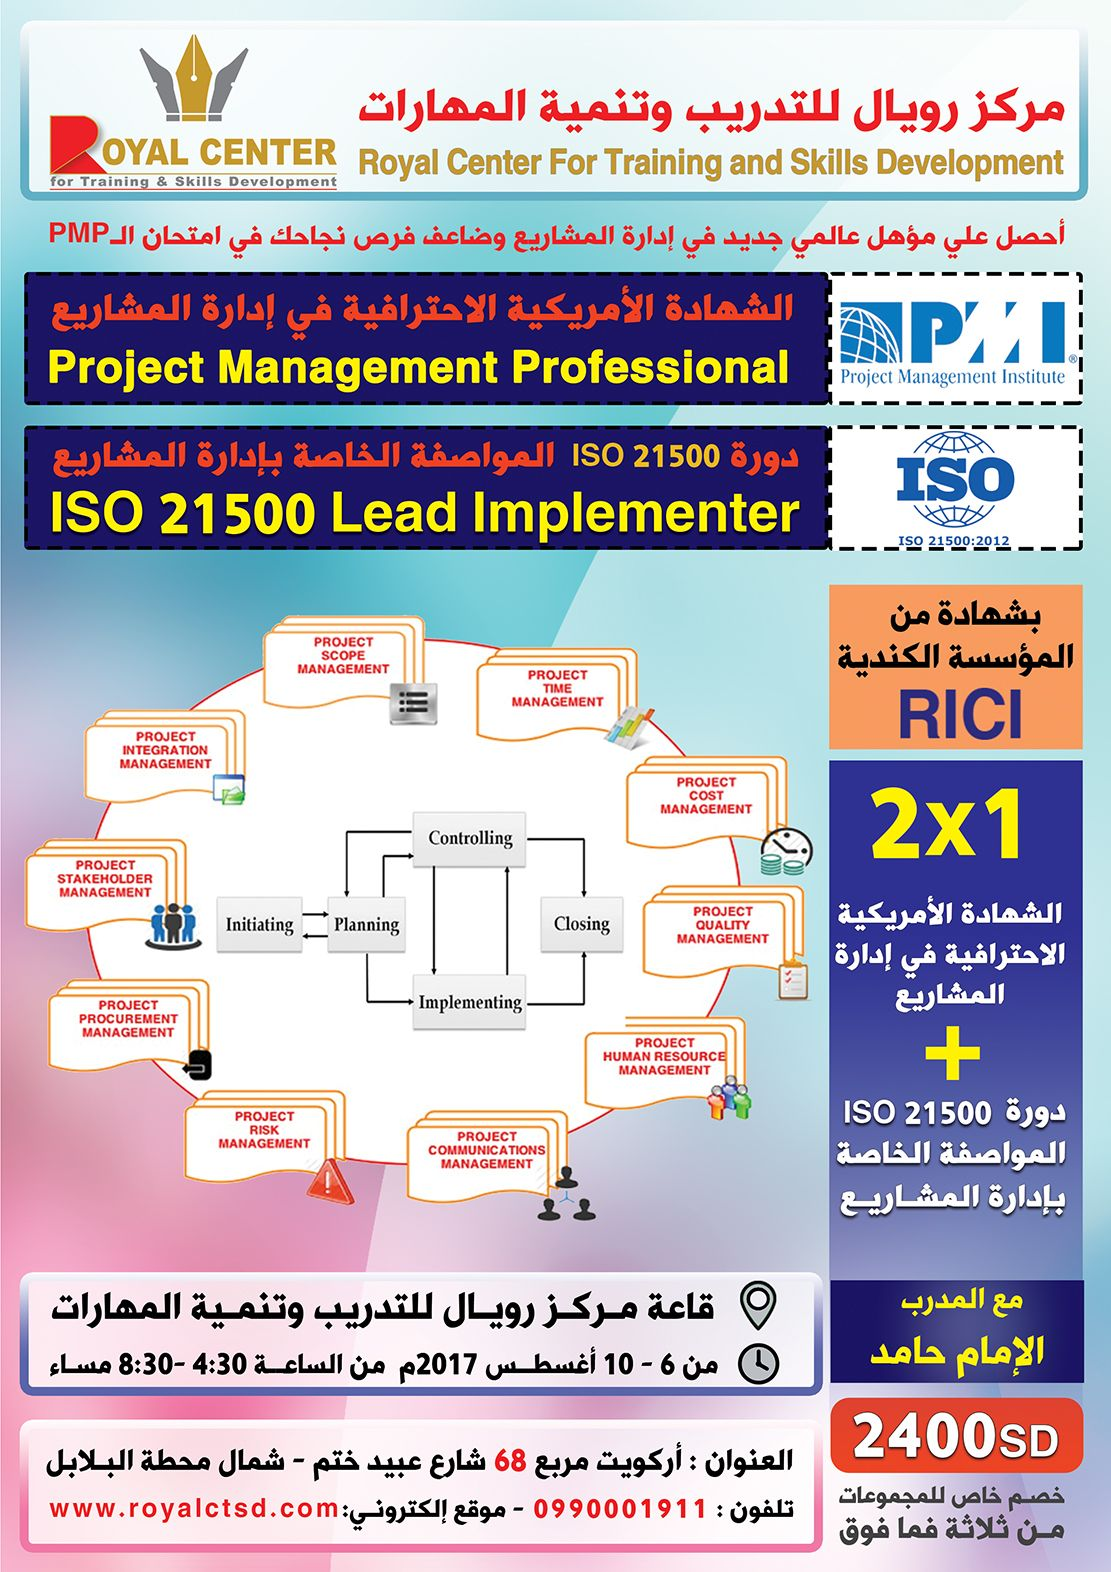 تصميم اعلان دورة تدريبية Project Management Professional Training And Development Skill Training